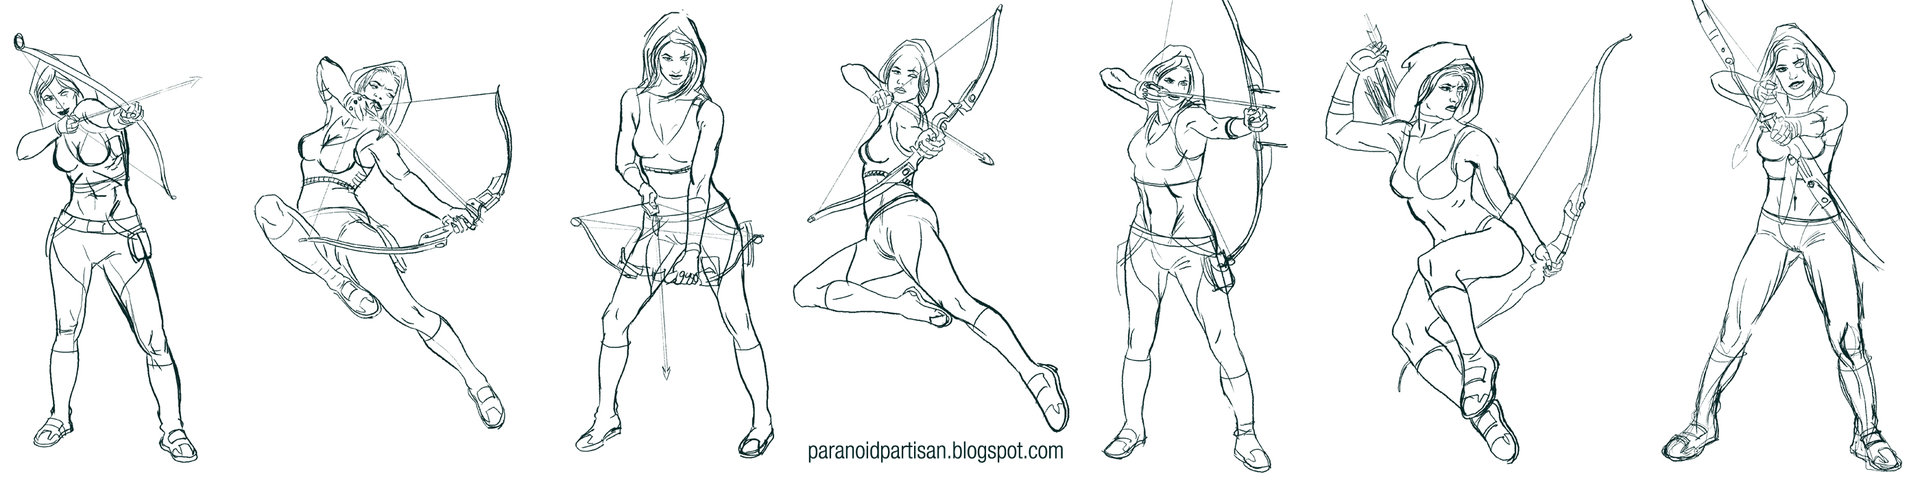 First sketches, looking for the right pose.